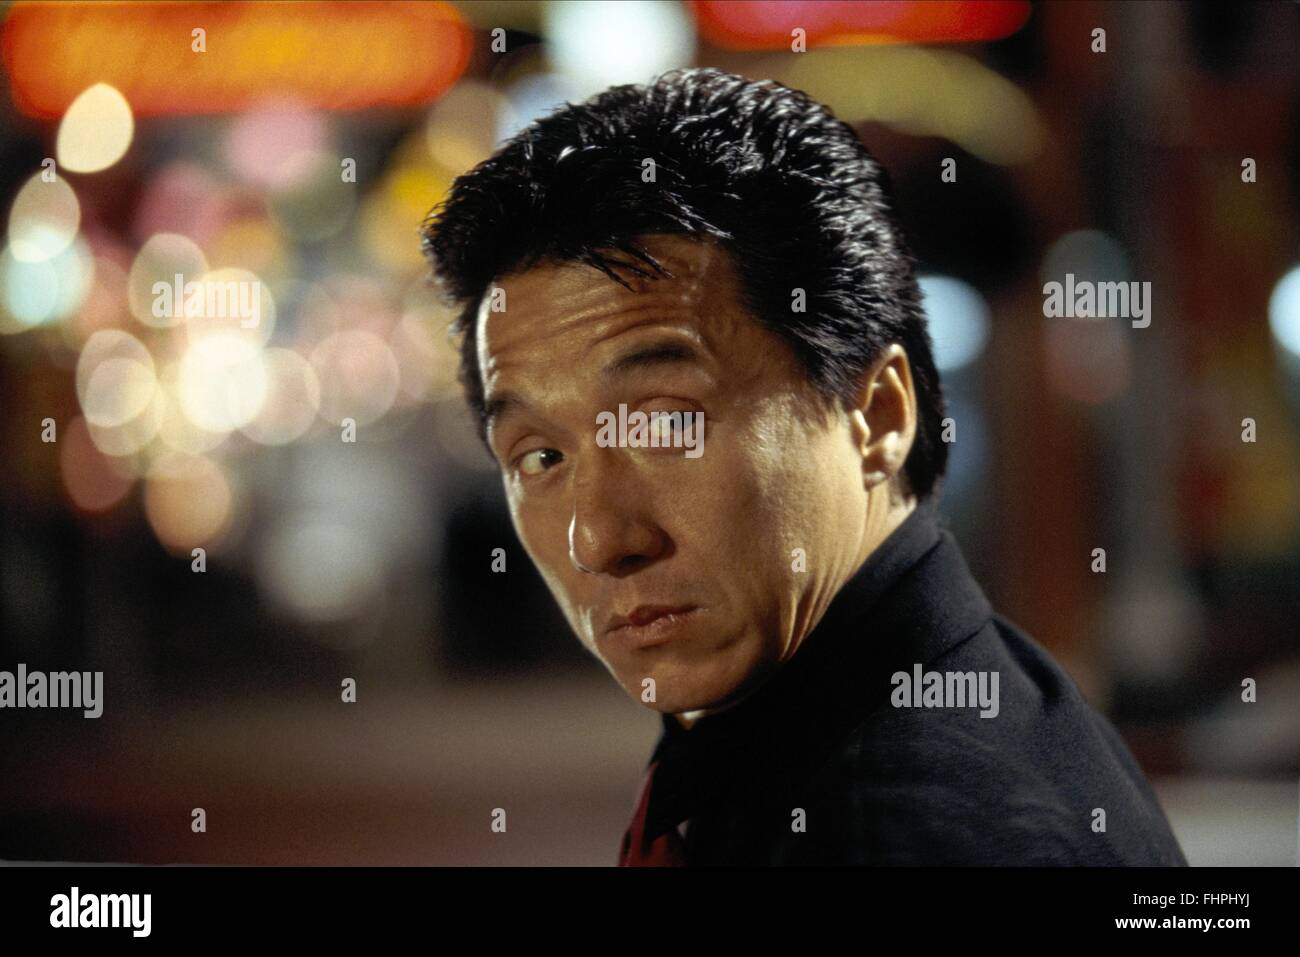 jackie chan stock photos jackie chan stock images alamy. Black Bedroom Furniture Sets. Home Design Ideas